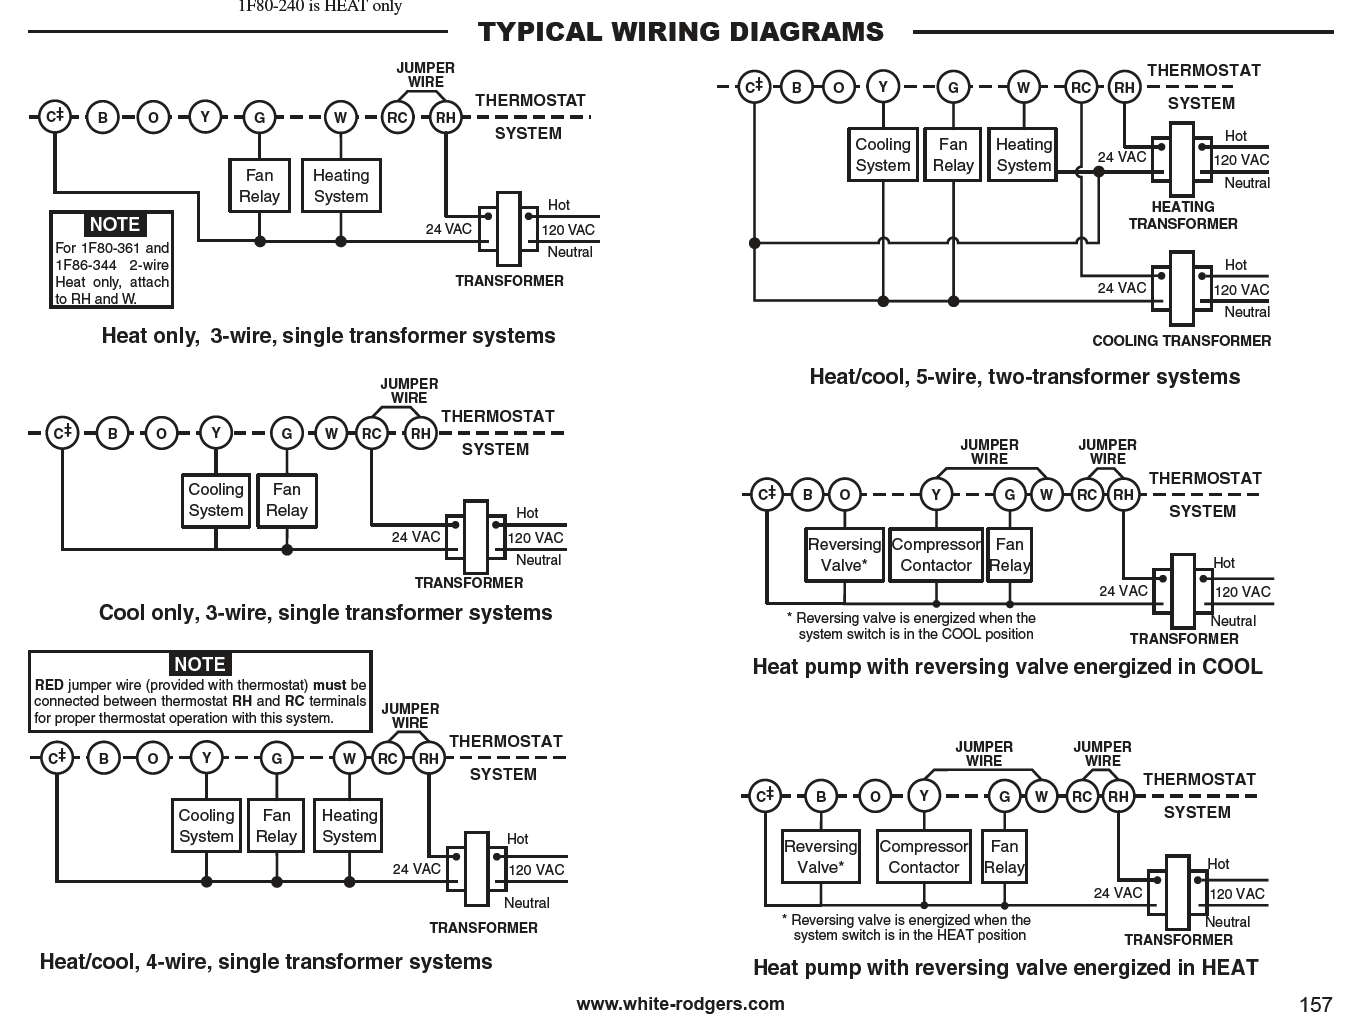 hight resolution of emerson white rodgers 1f80 series thermostats typical wiring diagrams at inspectapedia com cited in detail